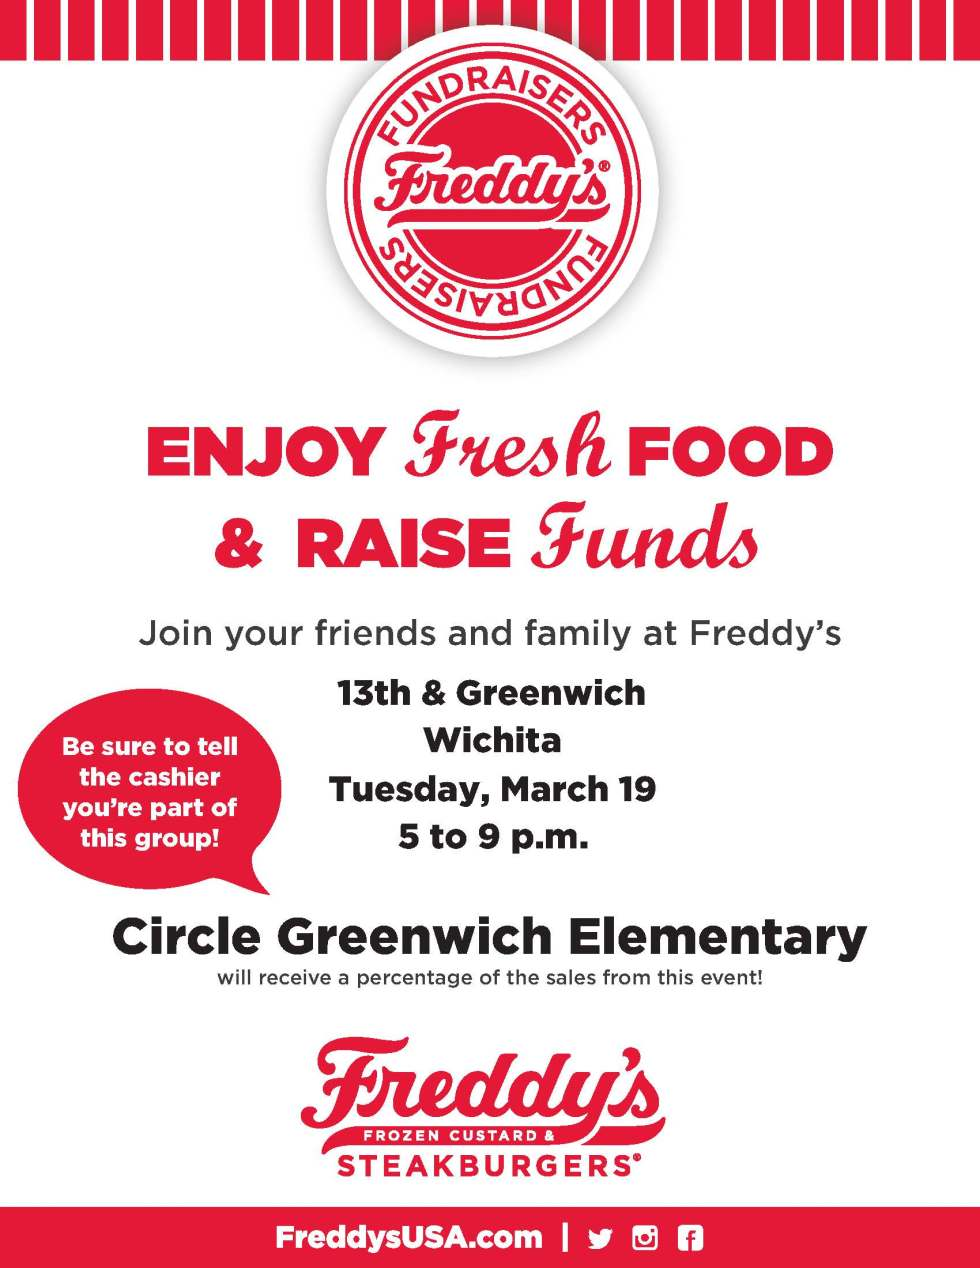 Freddys_Circle Greenwich_Full